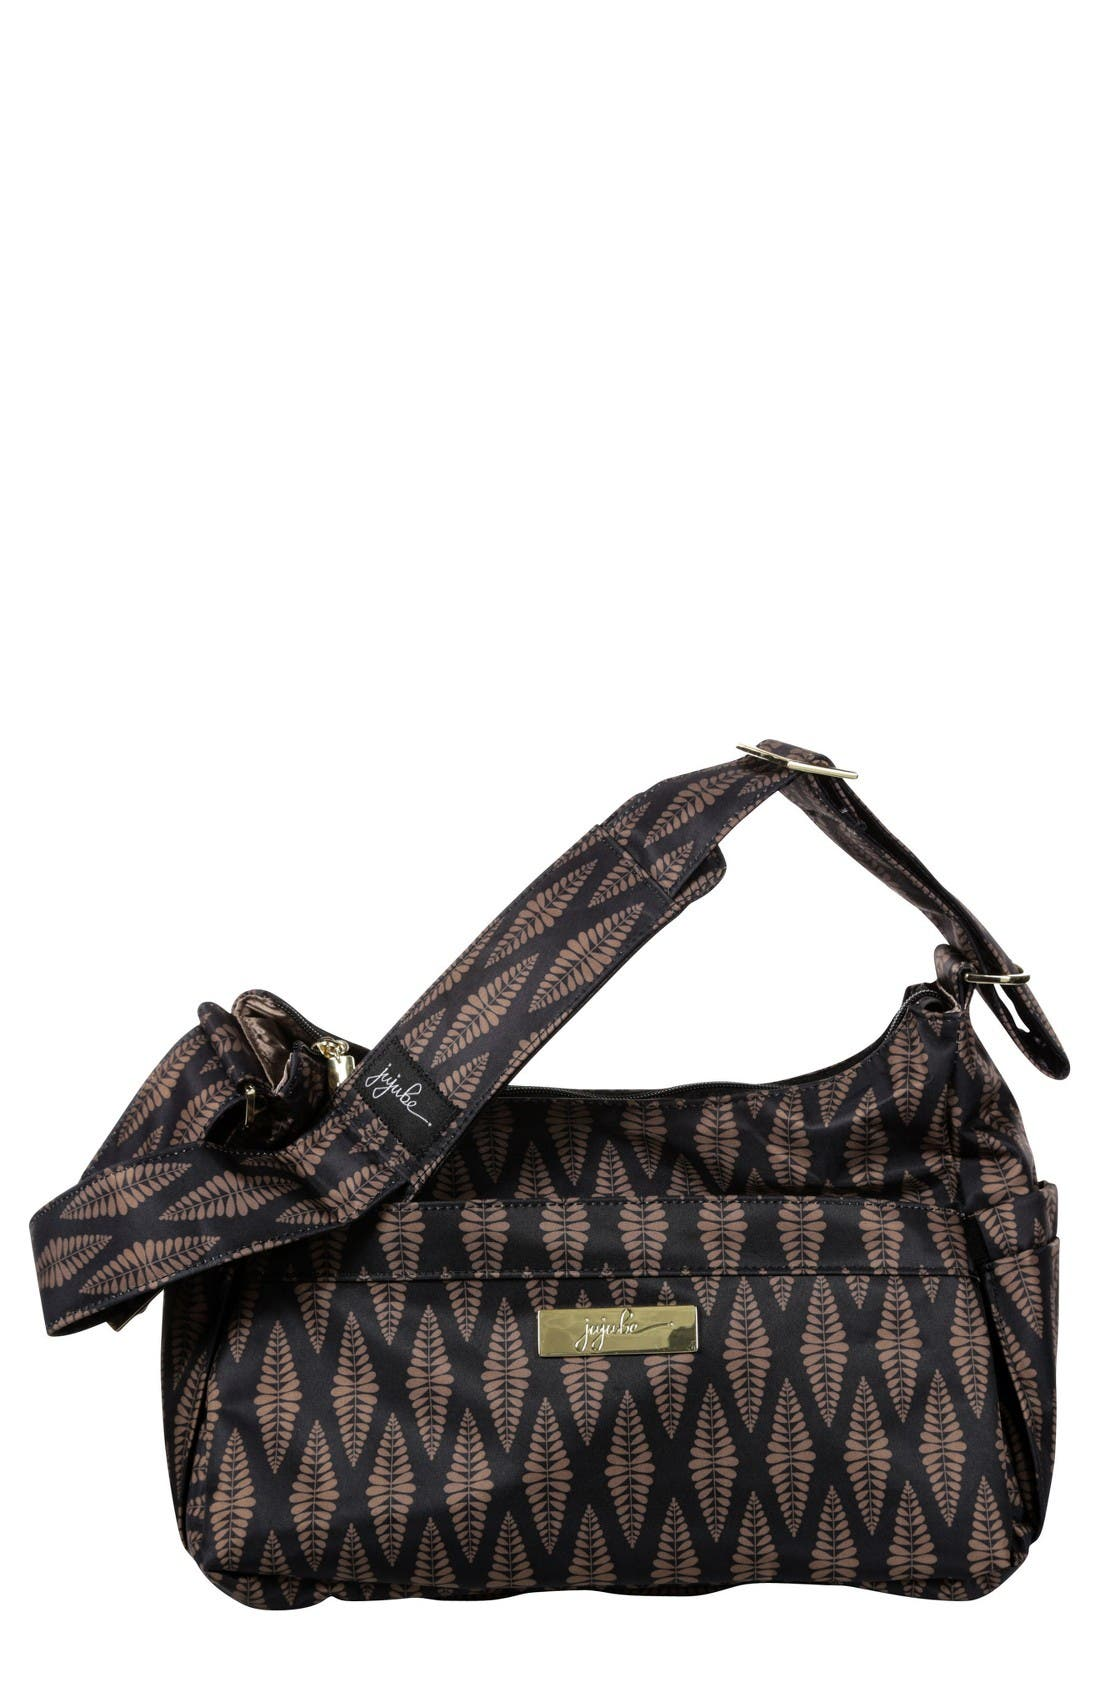 'Legacy HoboBe - The Duchess' Diaper Bag,                         Main,                         color, The Versailles